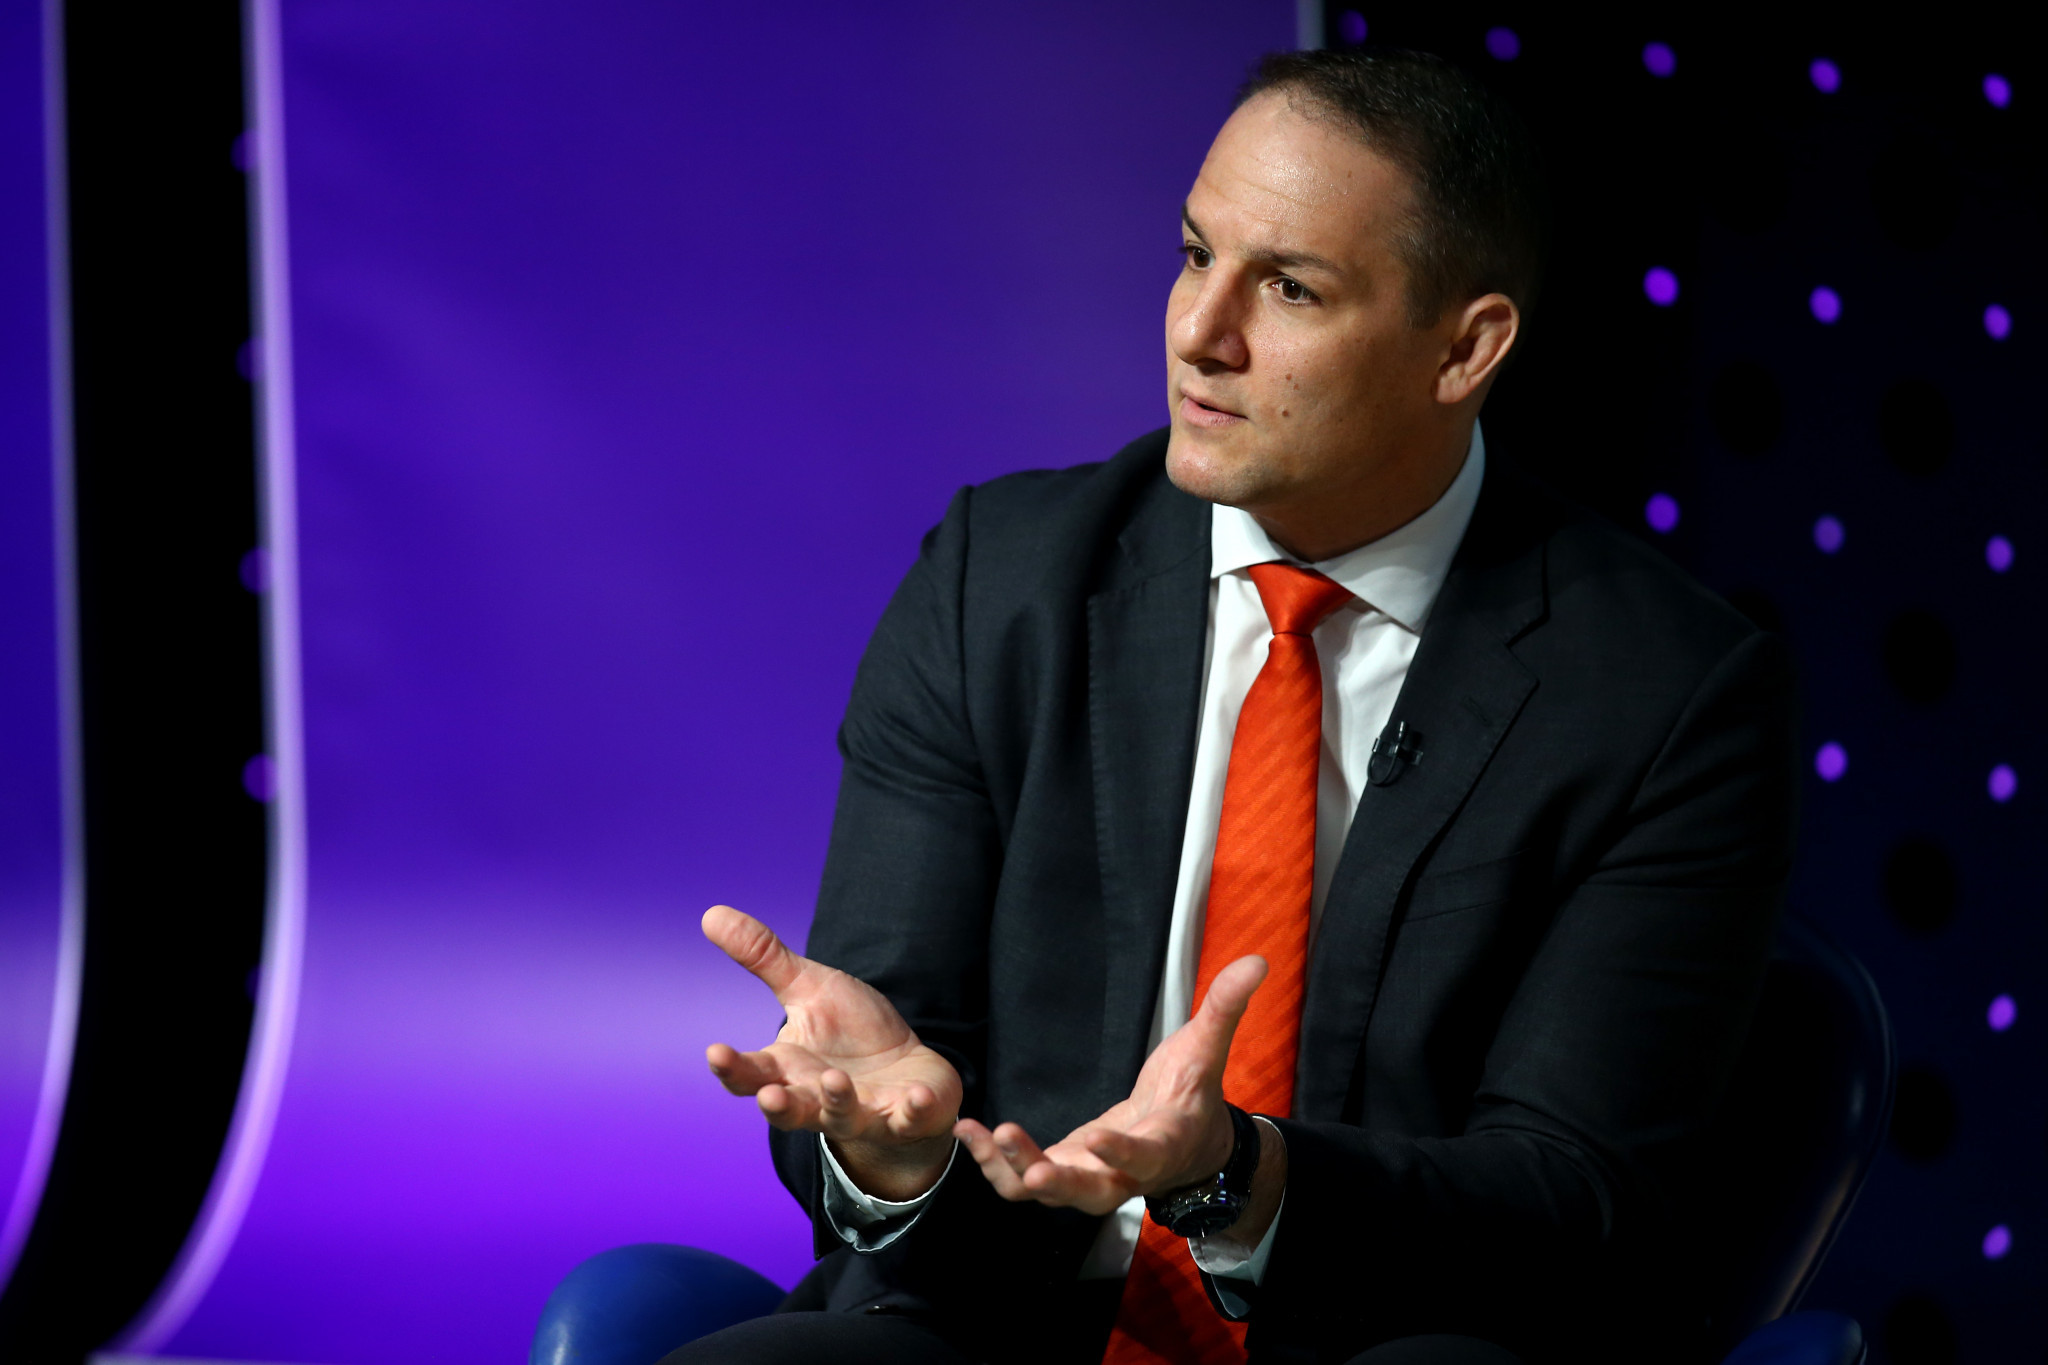 CGF chief executive David Grevemberg is expected to be among the delegation which will visit Adelaide next month ©Getty Images